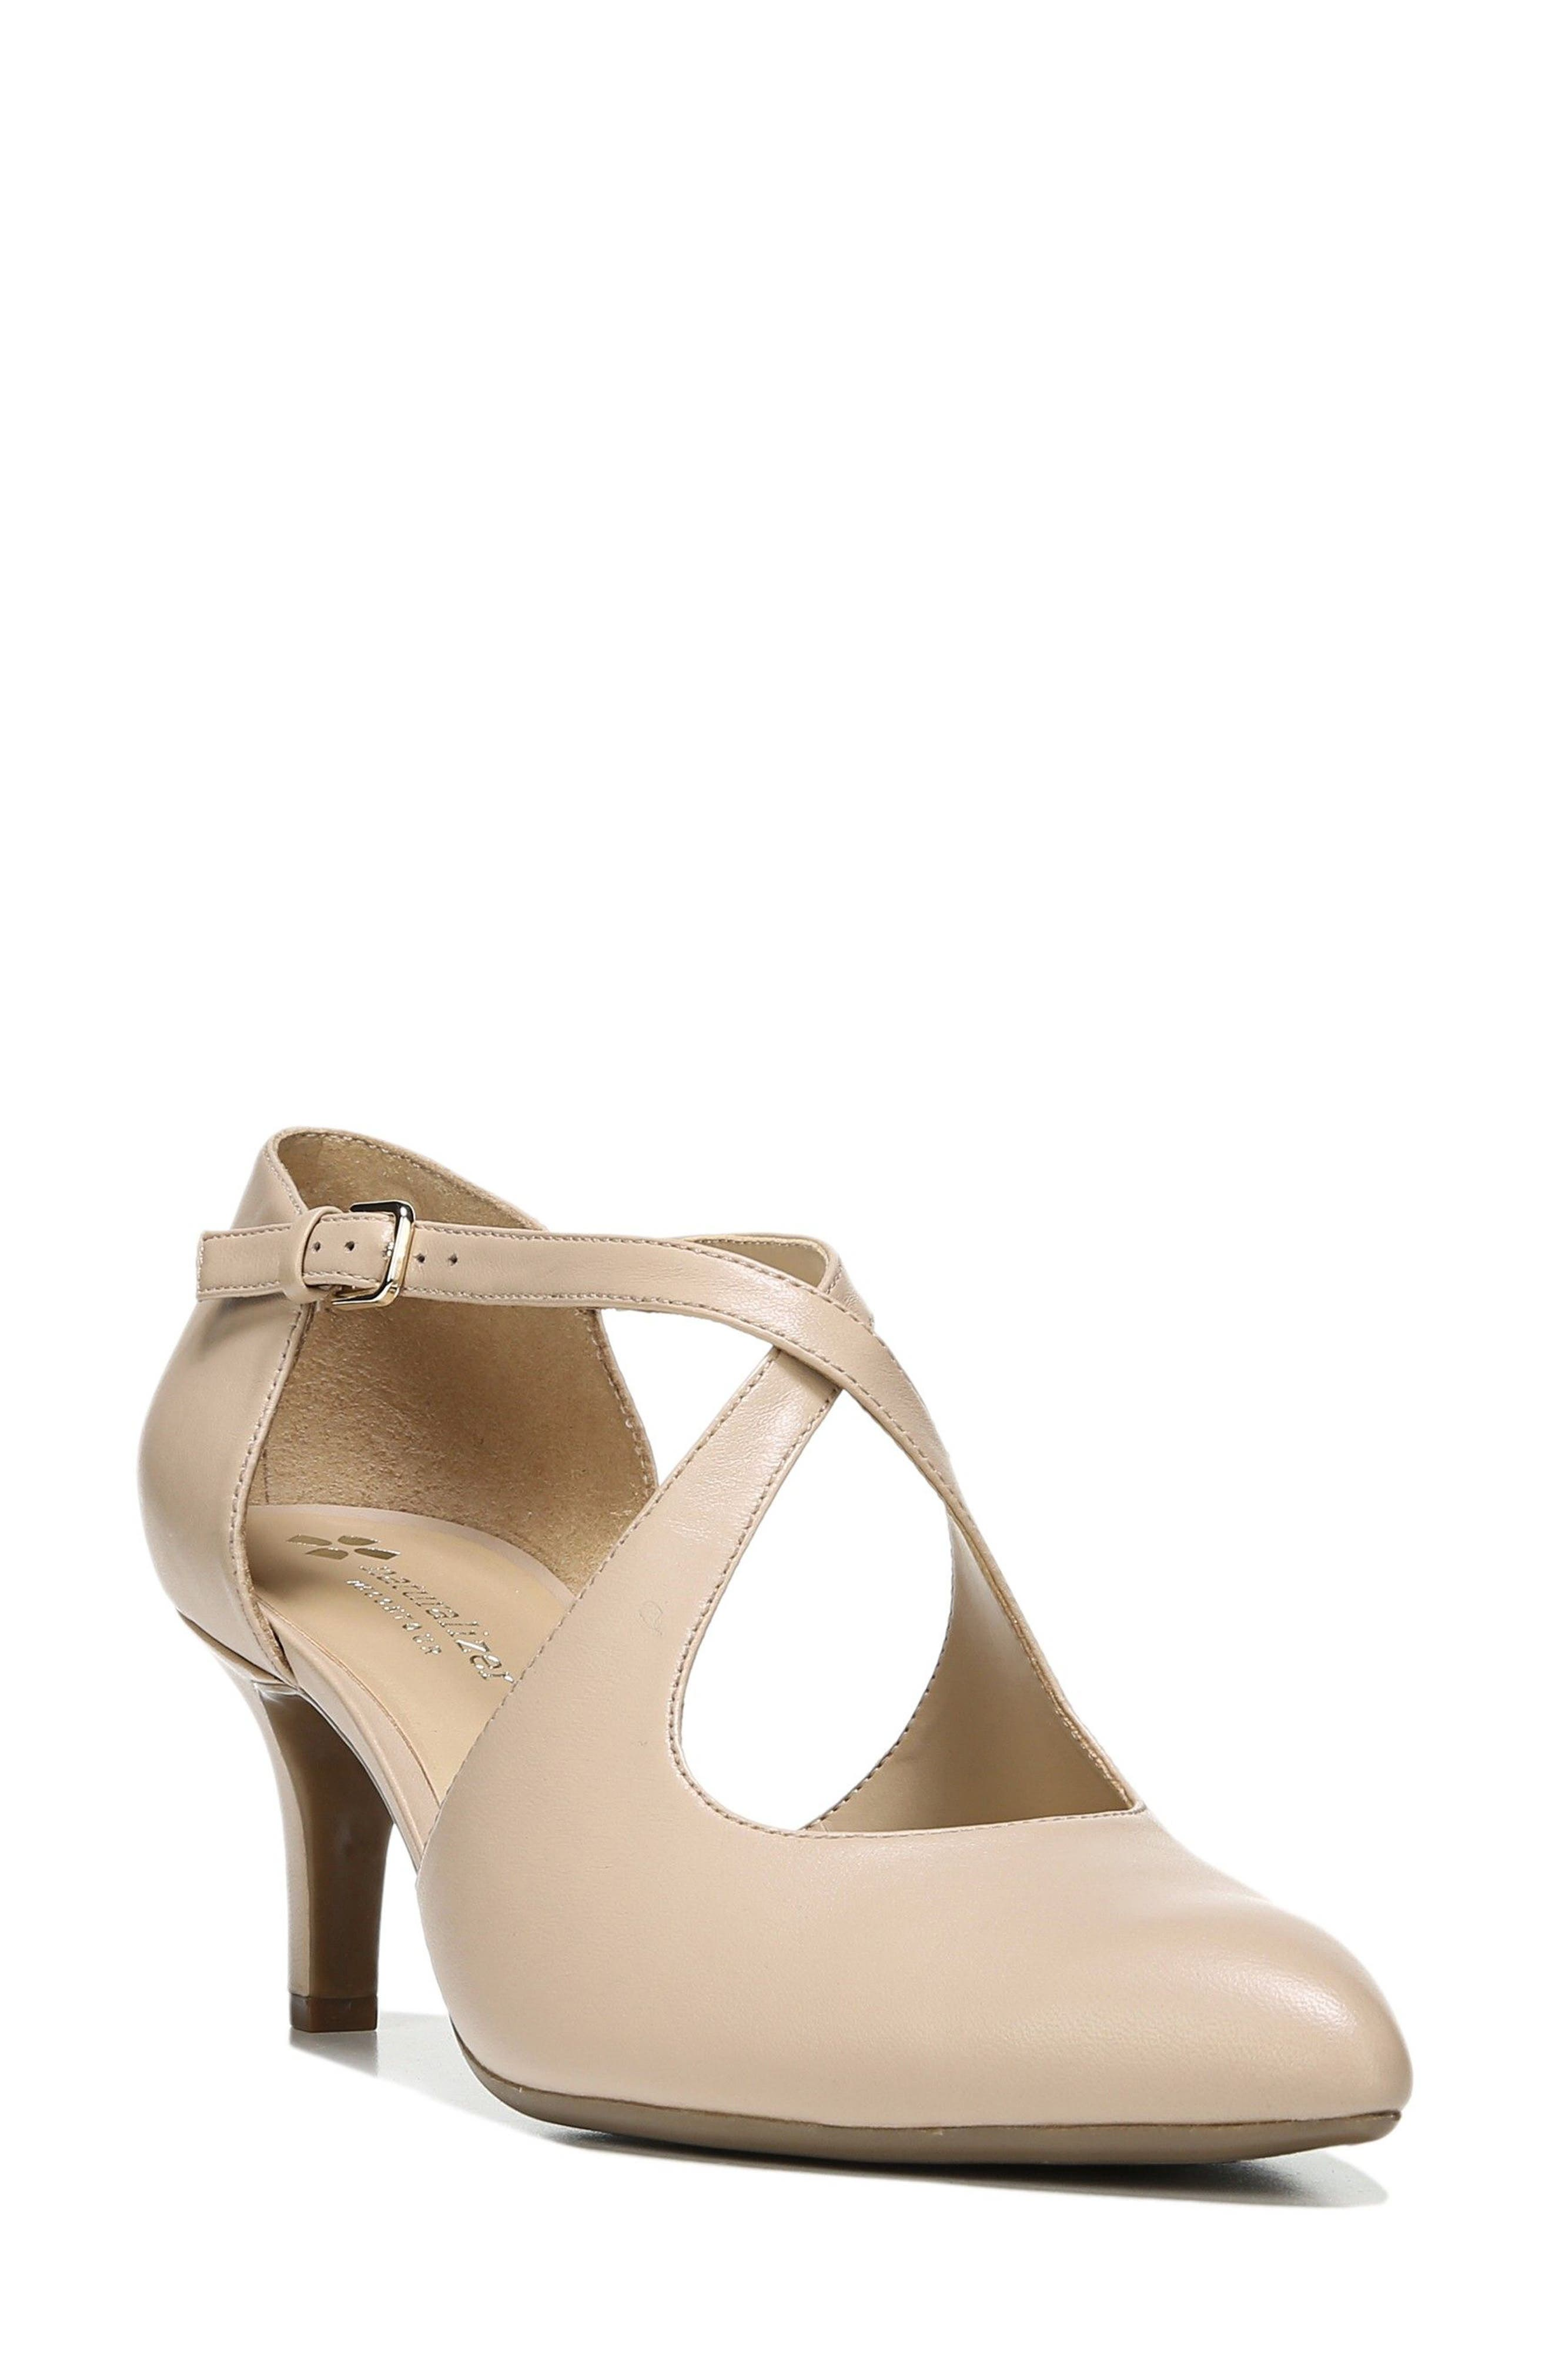 Okira Crisscross Pump,                         Main,                         color, TAUPE LEATHER